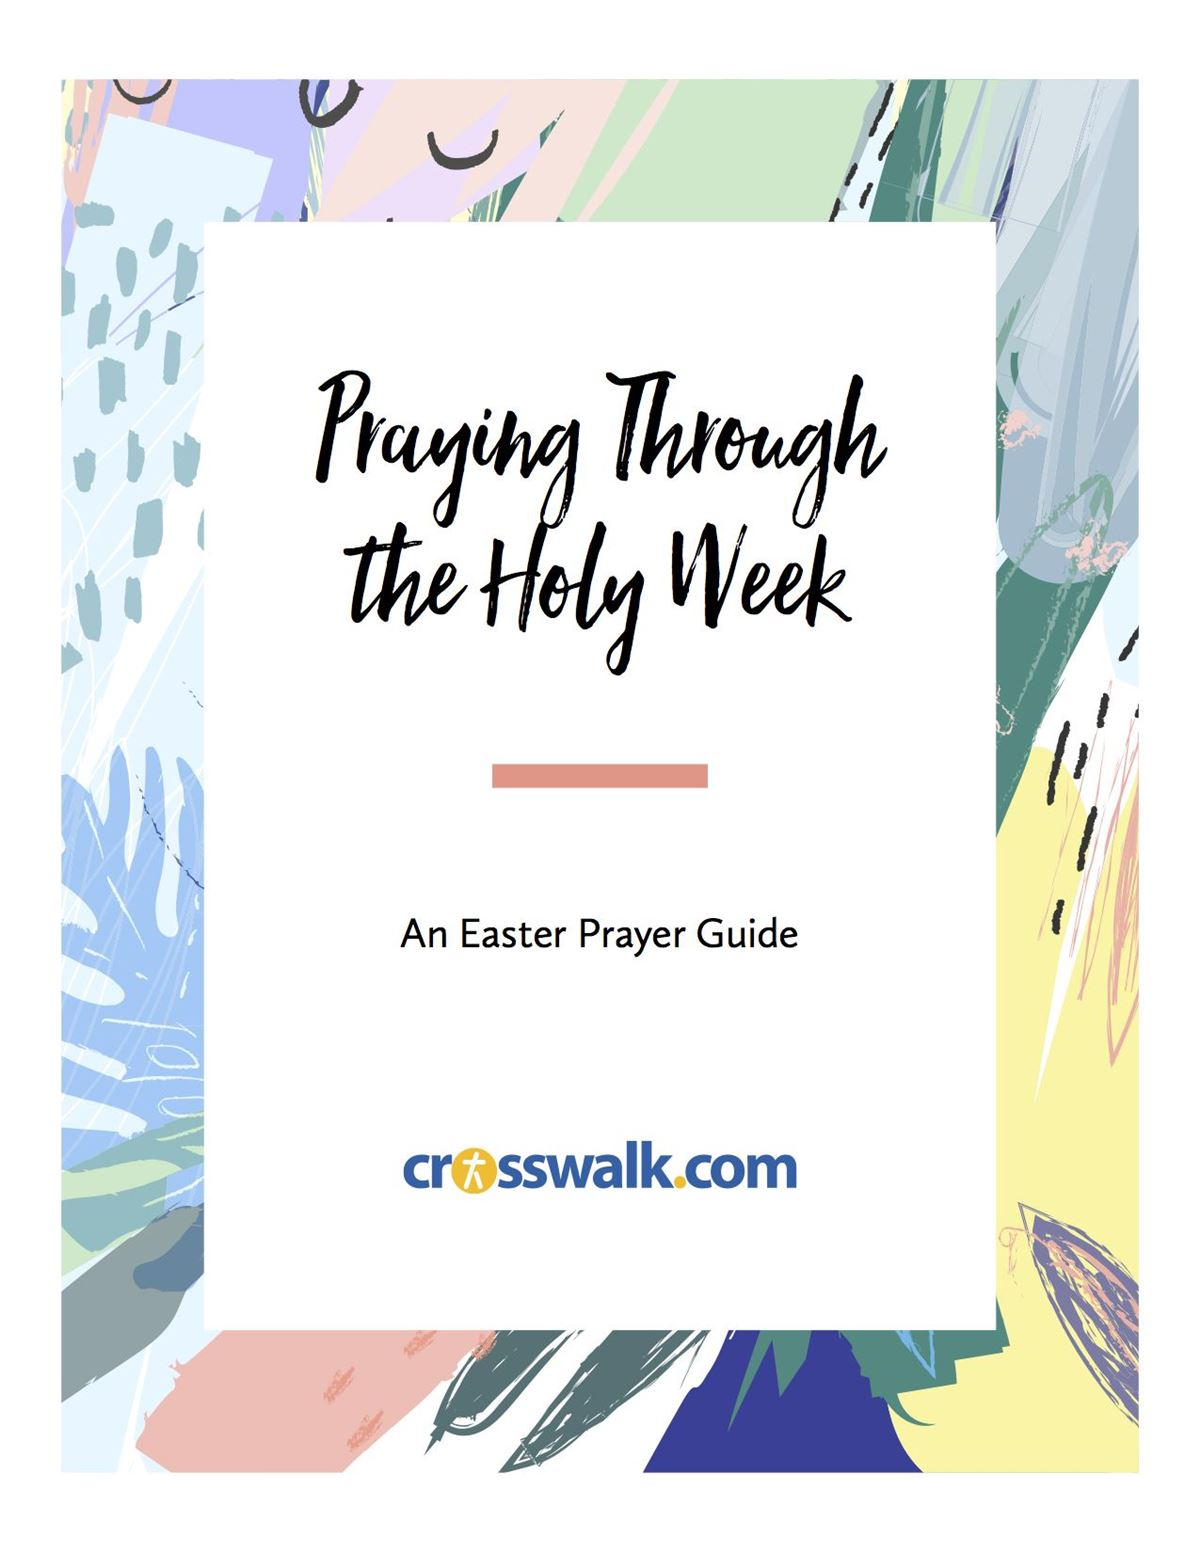 image regarding Free Printable Easter Cards Religious referred to as Down load Totally free Printables - Eye-catching Inspiring Christian Pictures